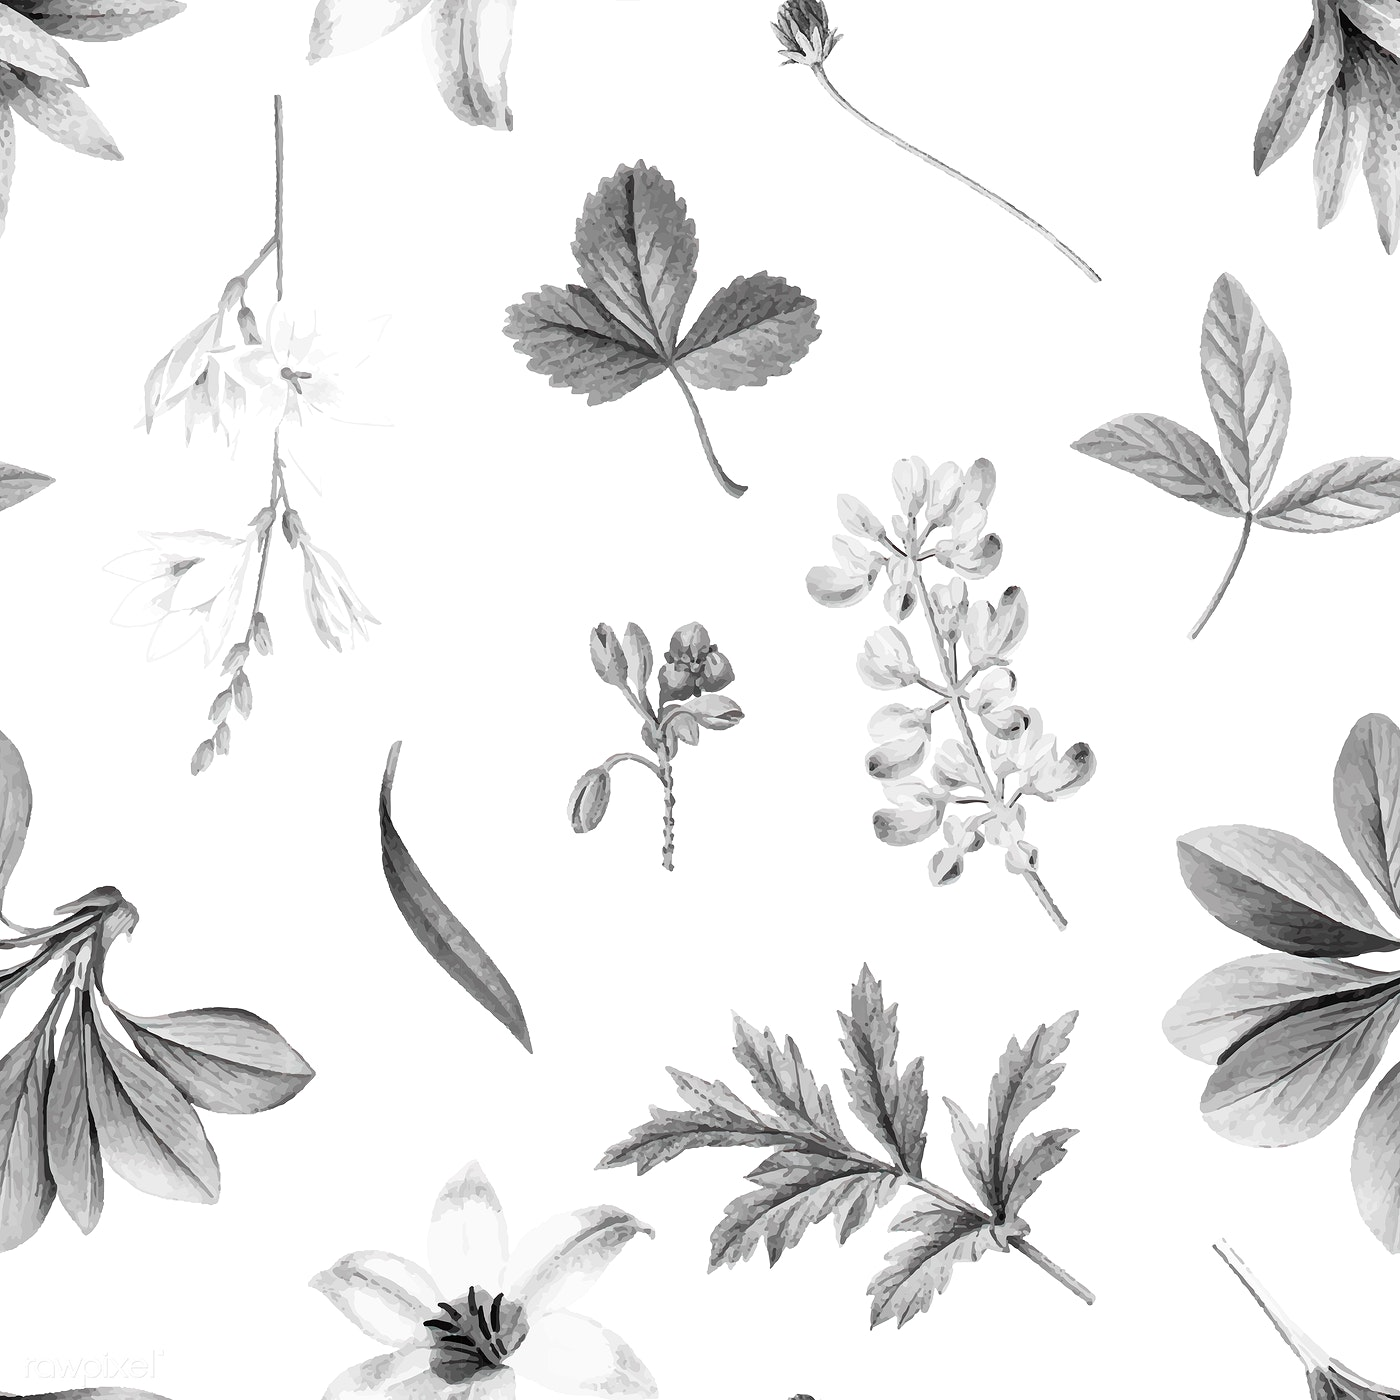 Floral Background Illustration Royalty Free Vector 1201146